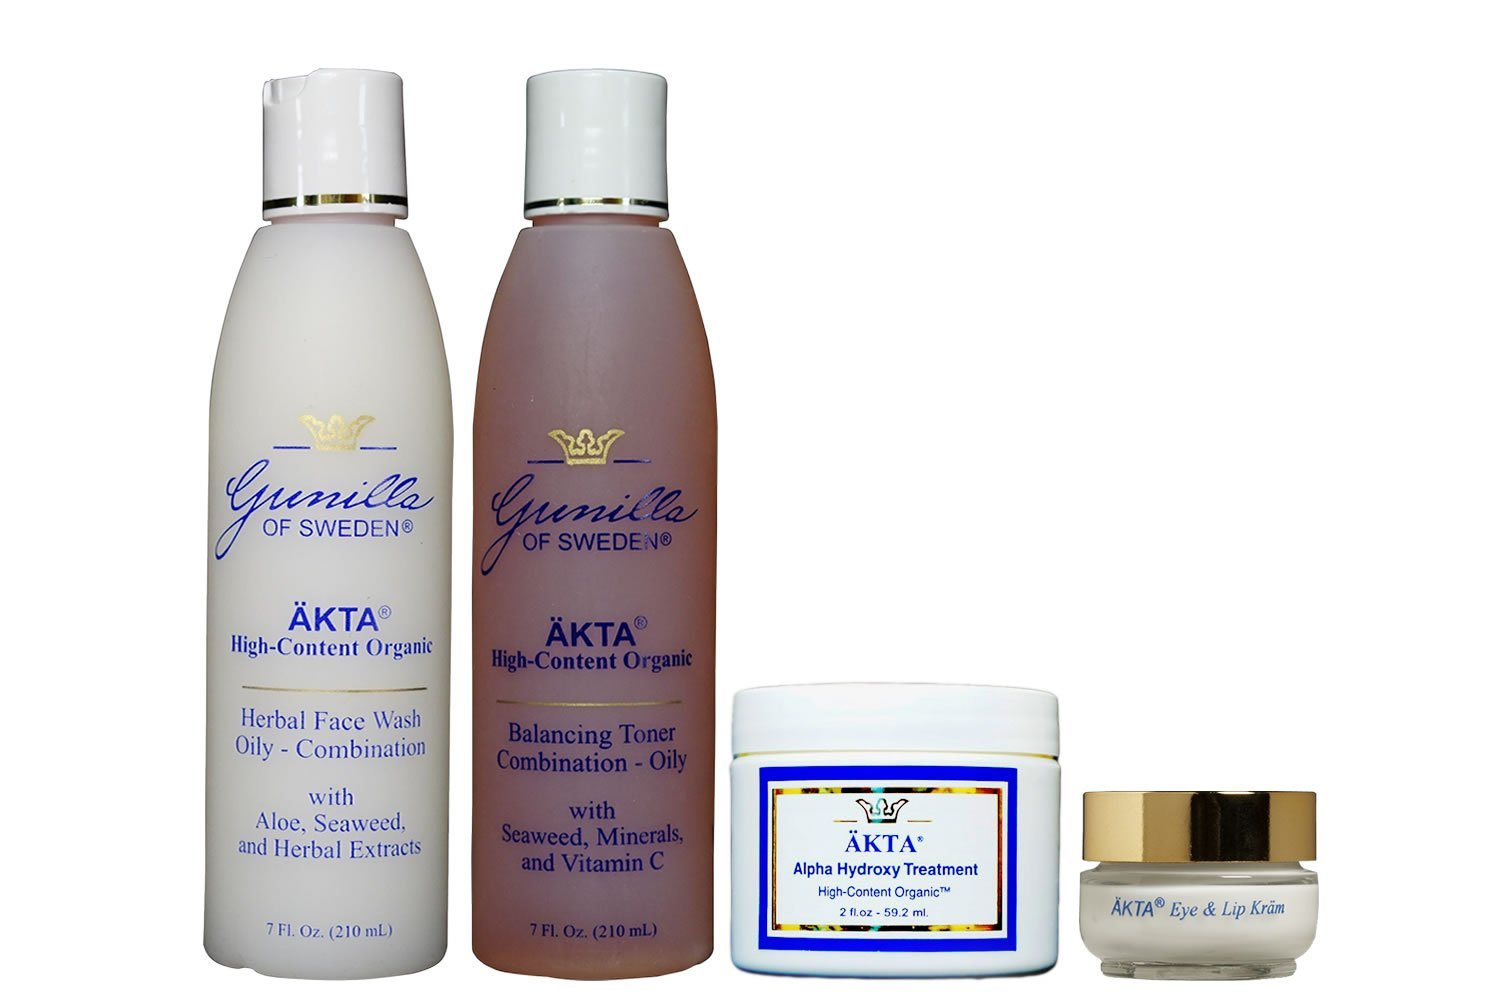 ÄKTA by Gunilla of Sweden Skin Care Organic System (Oily/Combo Skin): Based on Nutrient Rich Organic Aloe. Botanical Extracts & Alpha Hydroxy Acids Provide Anti-Aging Benefits- Alcohol and Oil-Free